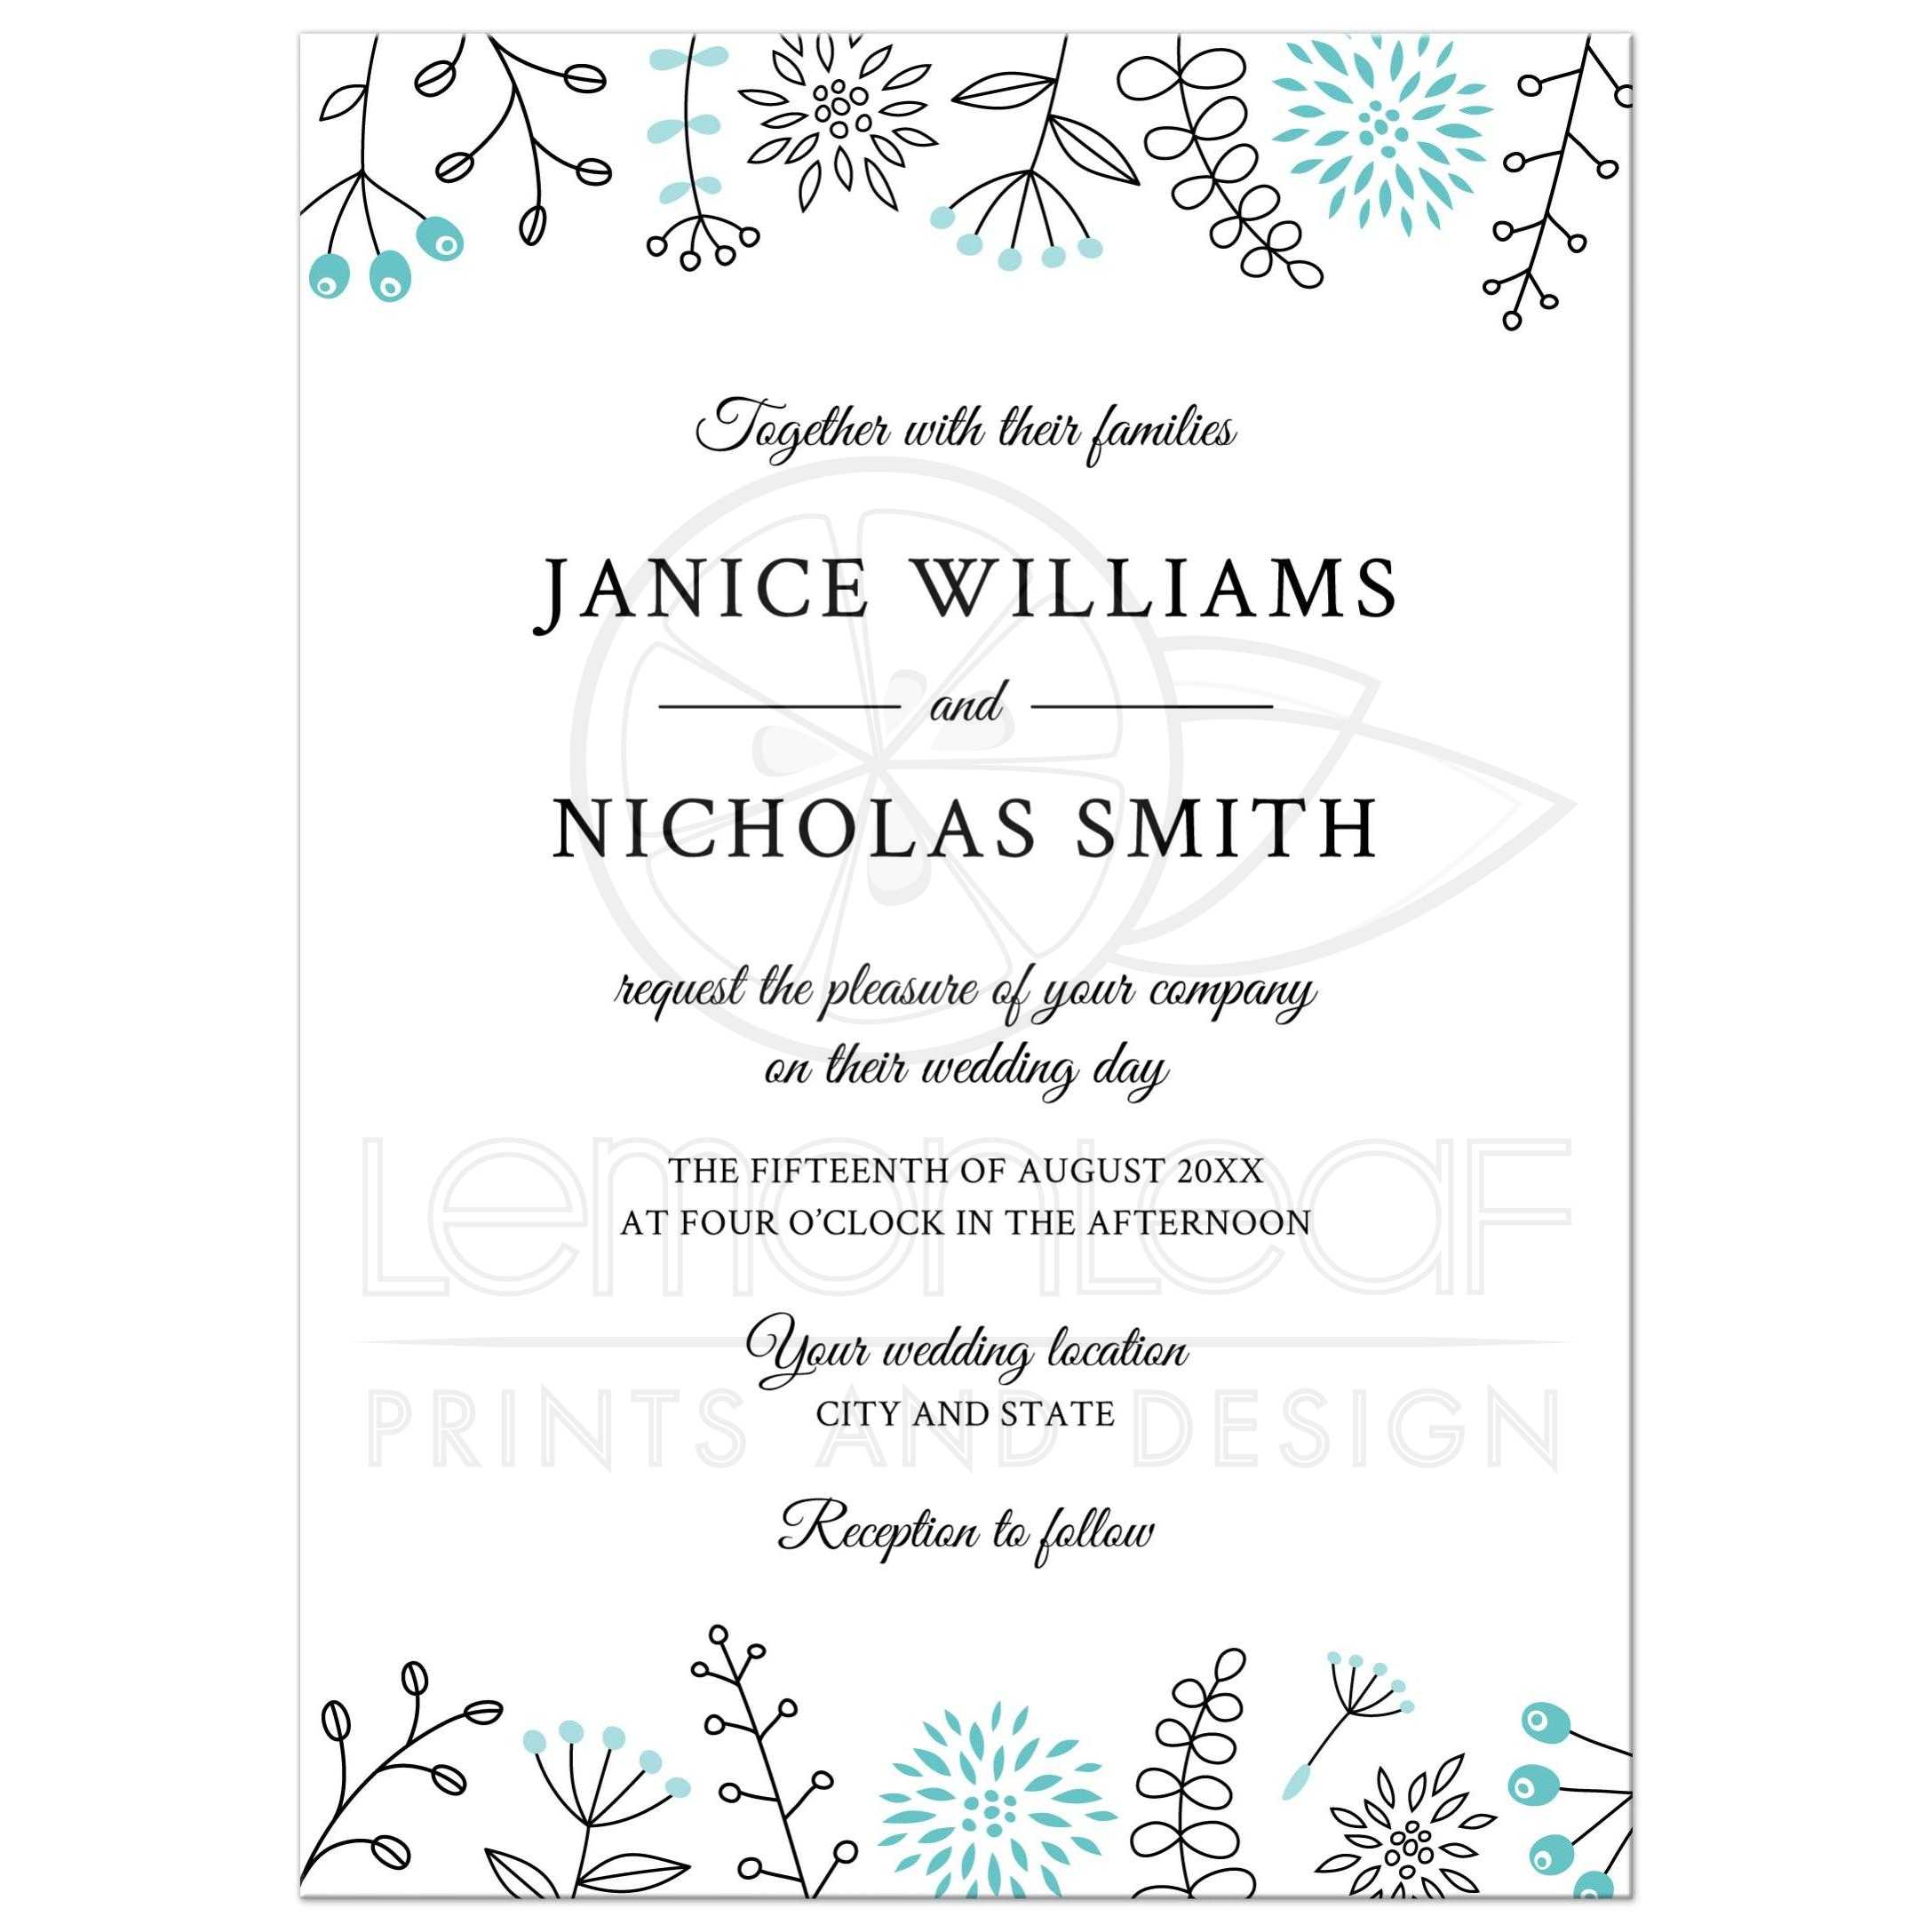 Modern Wedding Invitation With Nature And Flower Doodle Border